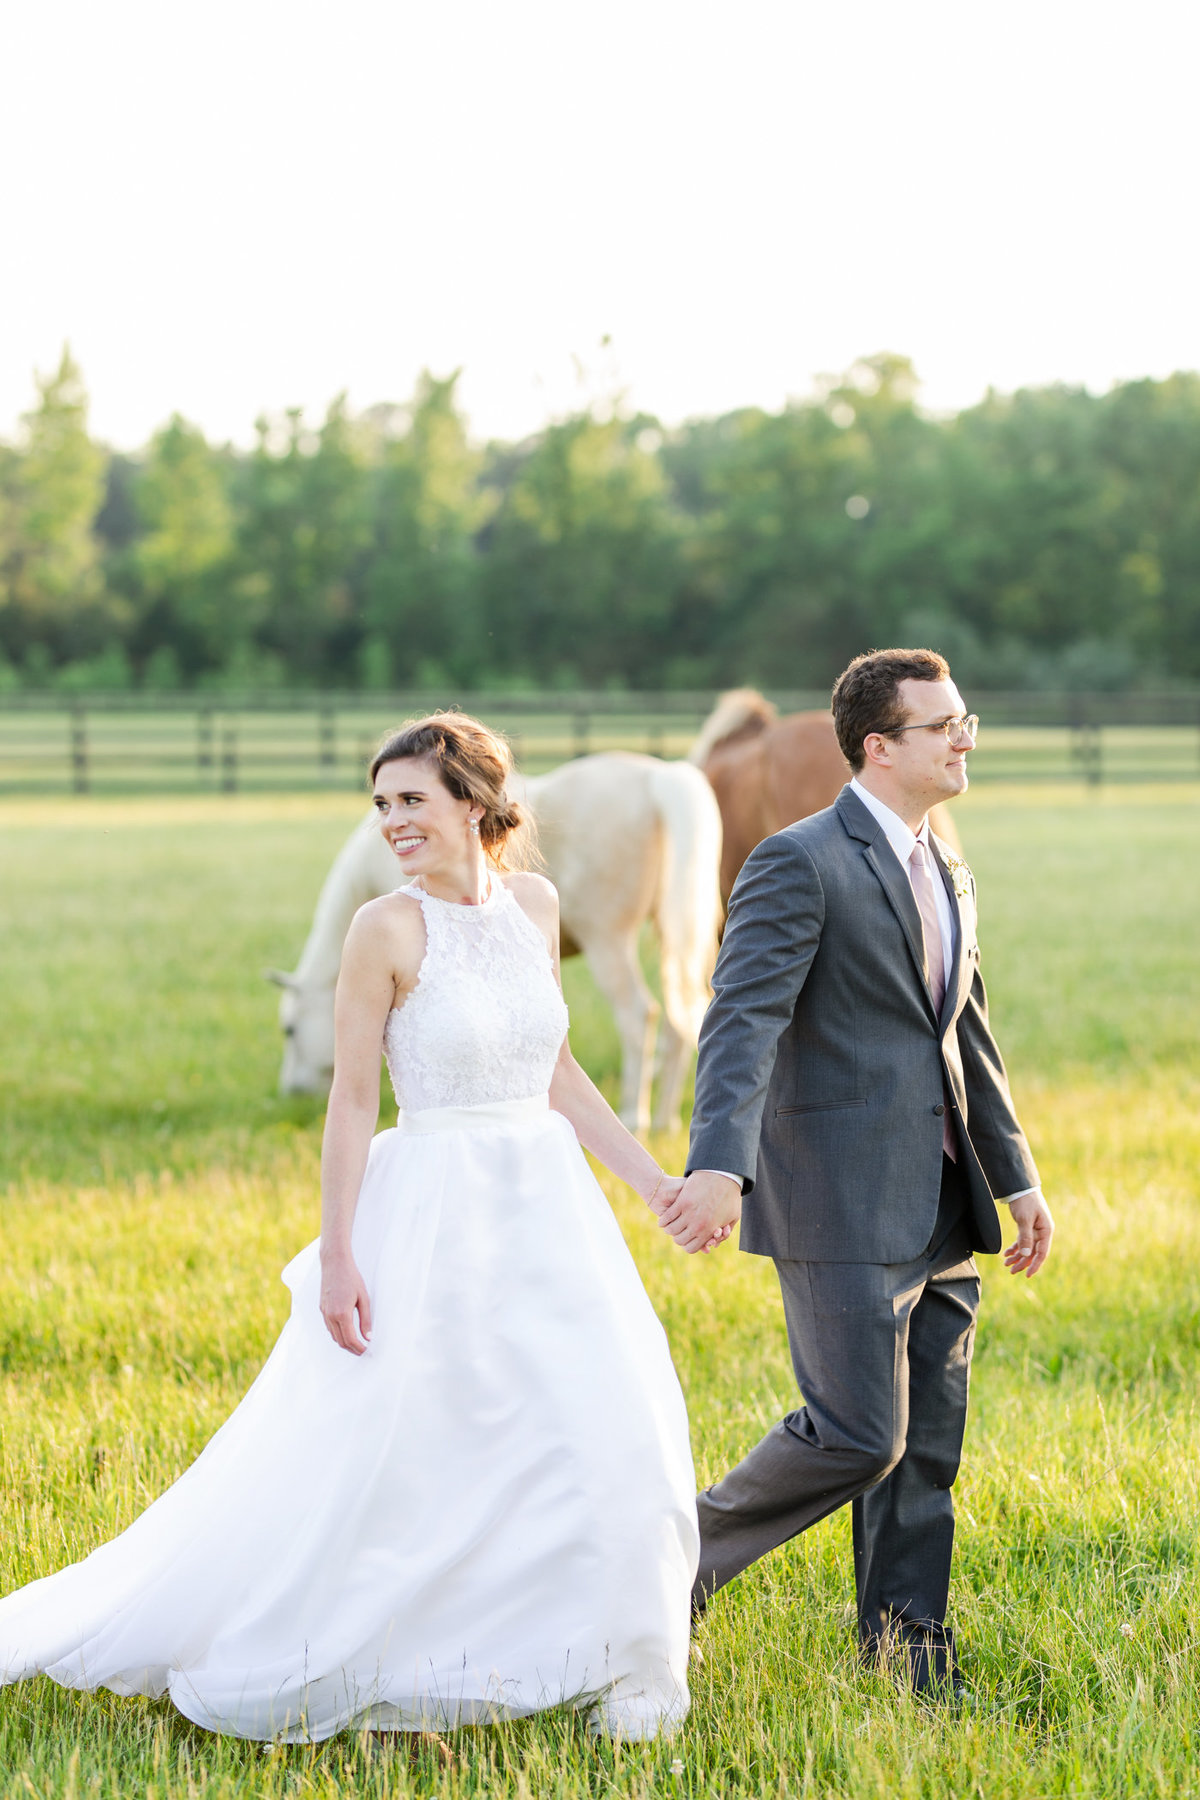 alturia-farm-wedding-luke-and-ashley-photography-27